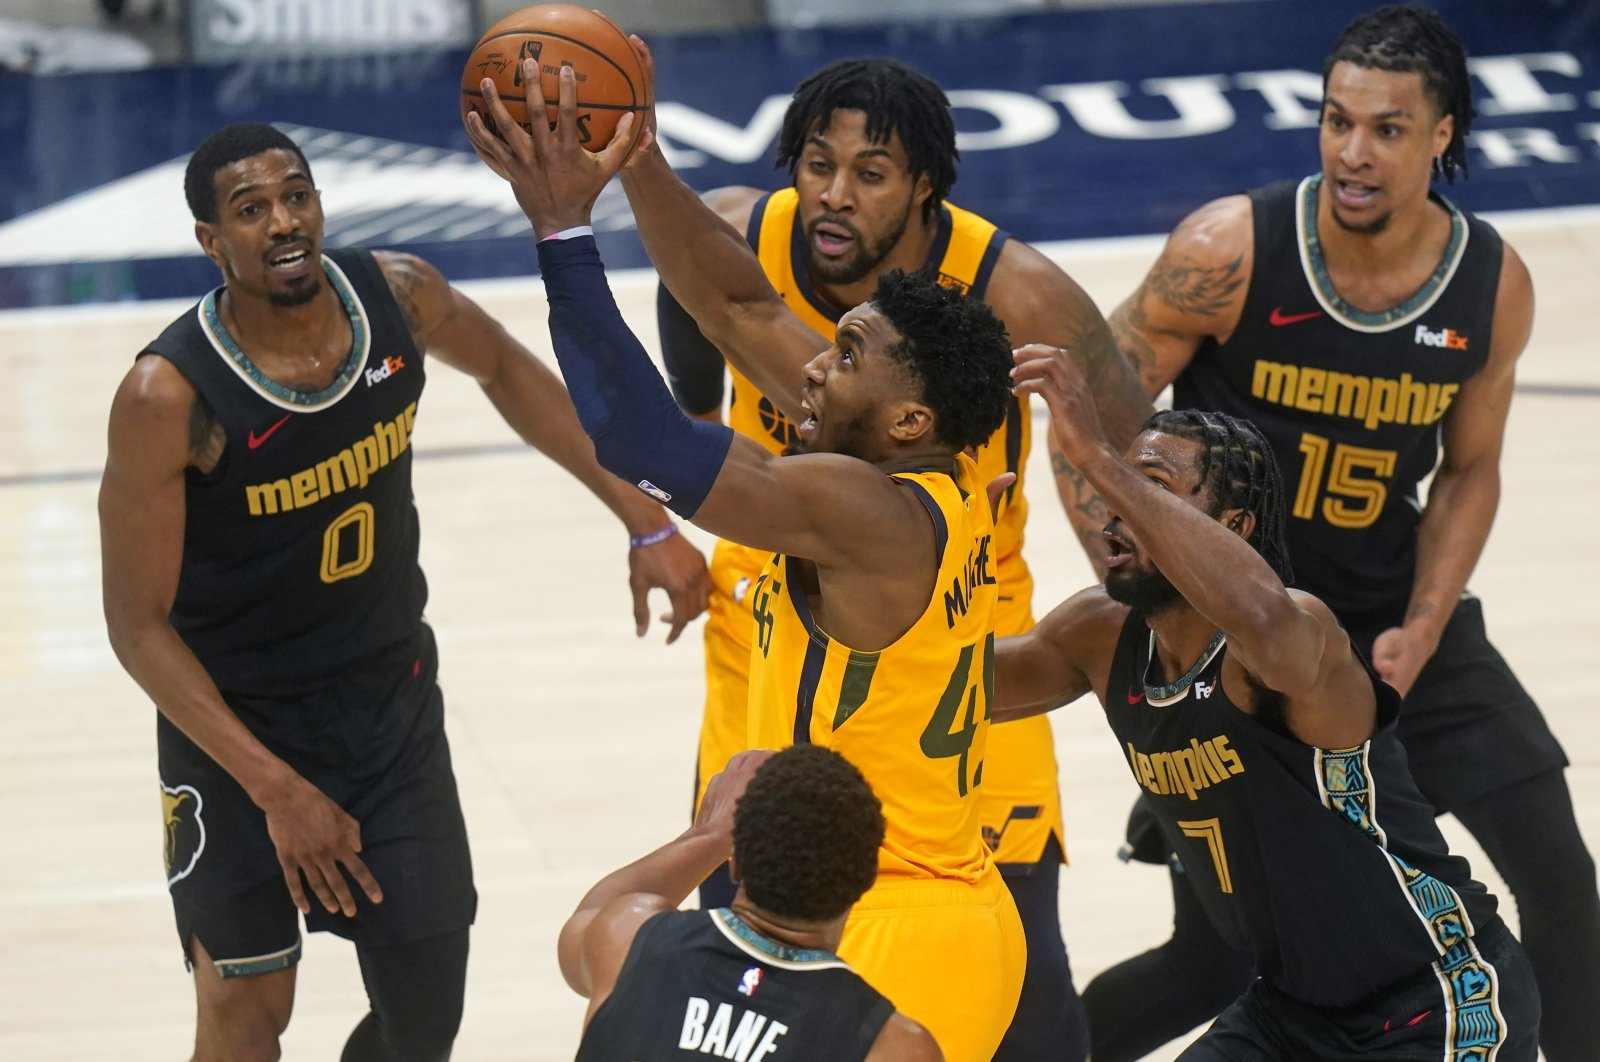 Utah Jazz guard Donovan Mitchell (C) goes to the basket as Memphis Grizzlies forward Justise Winslow (2nd R) defends in the second half during an NBA game, Salt Lake City, U.S., March 27, 2021. (AP Photo)